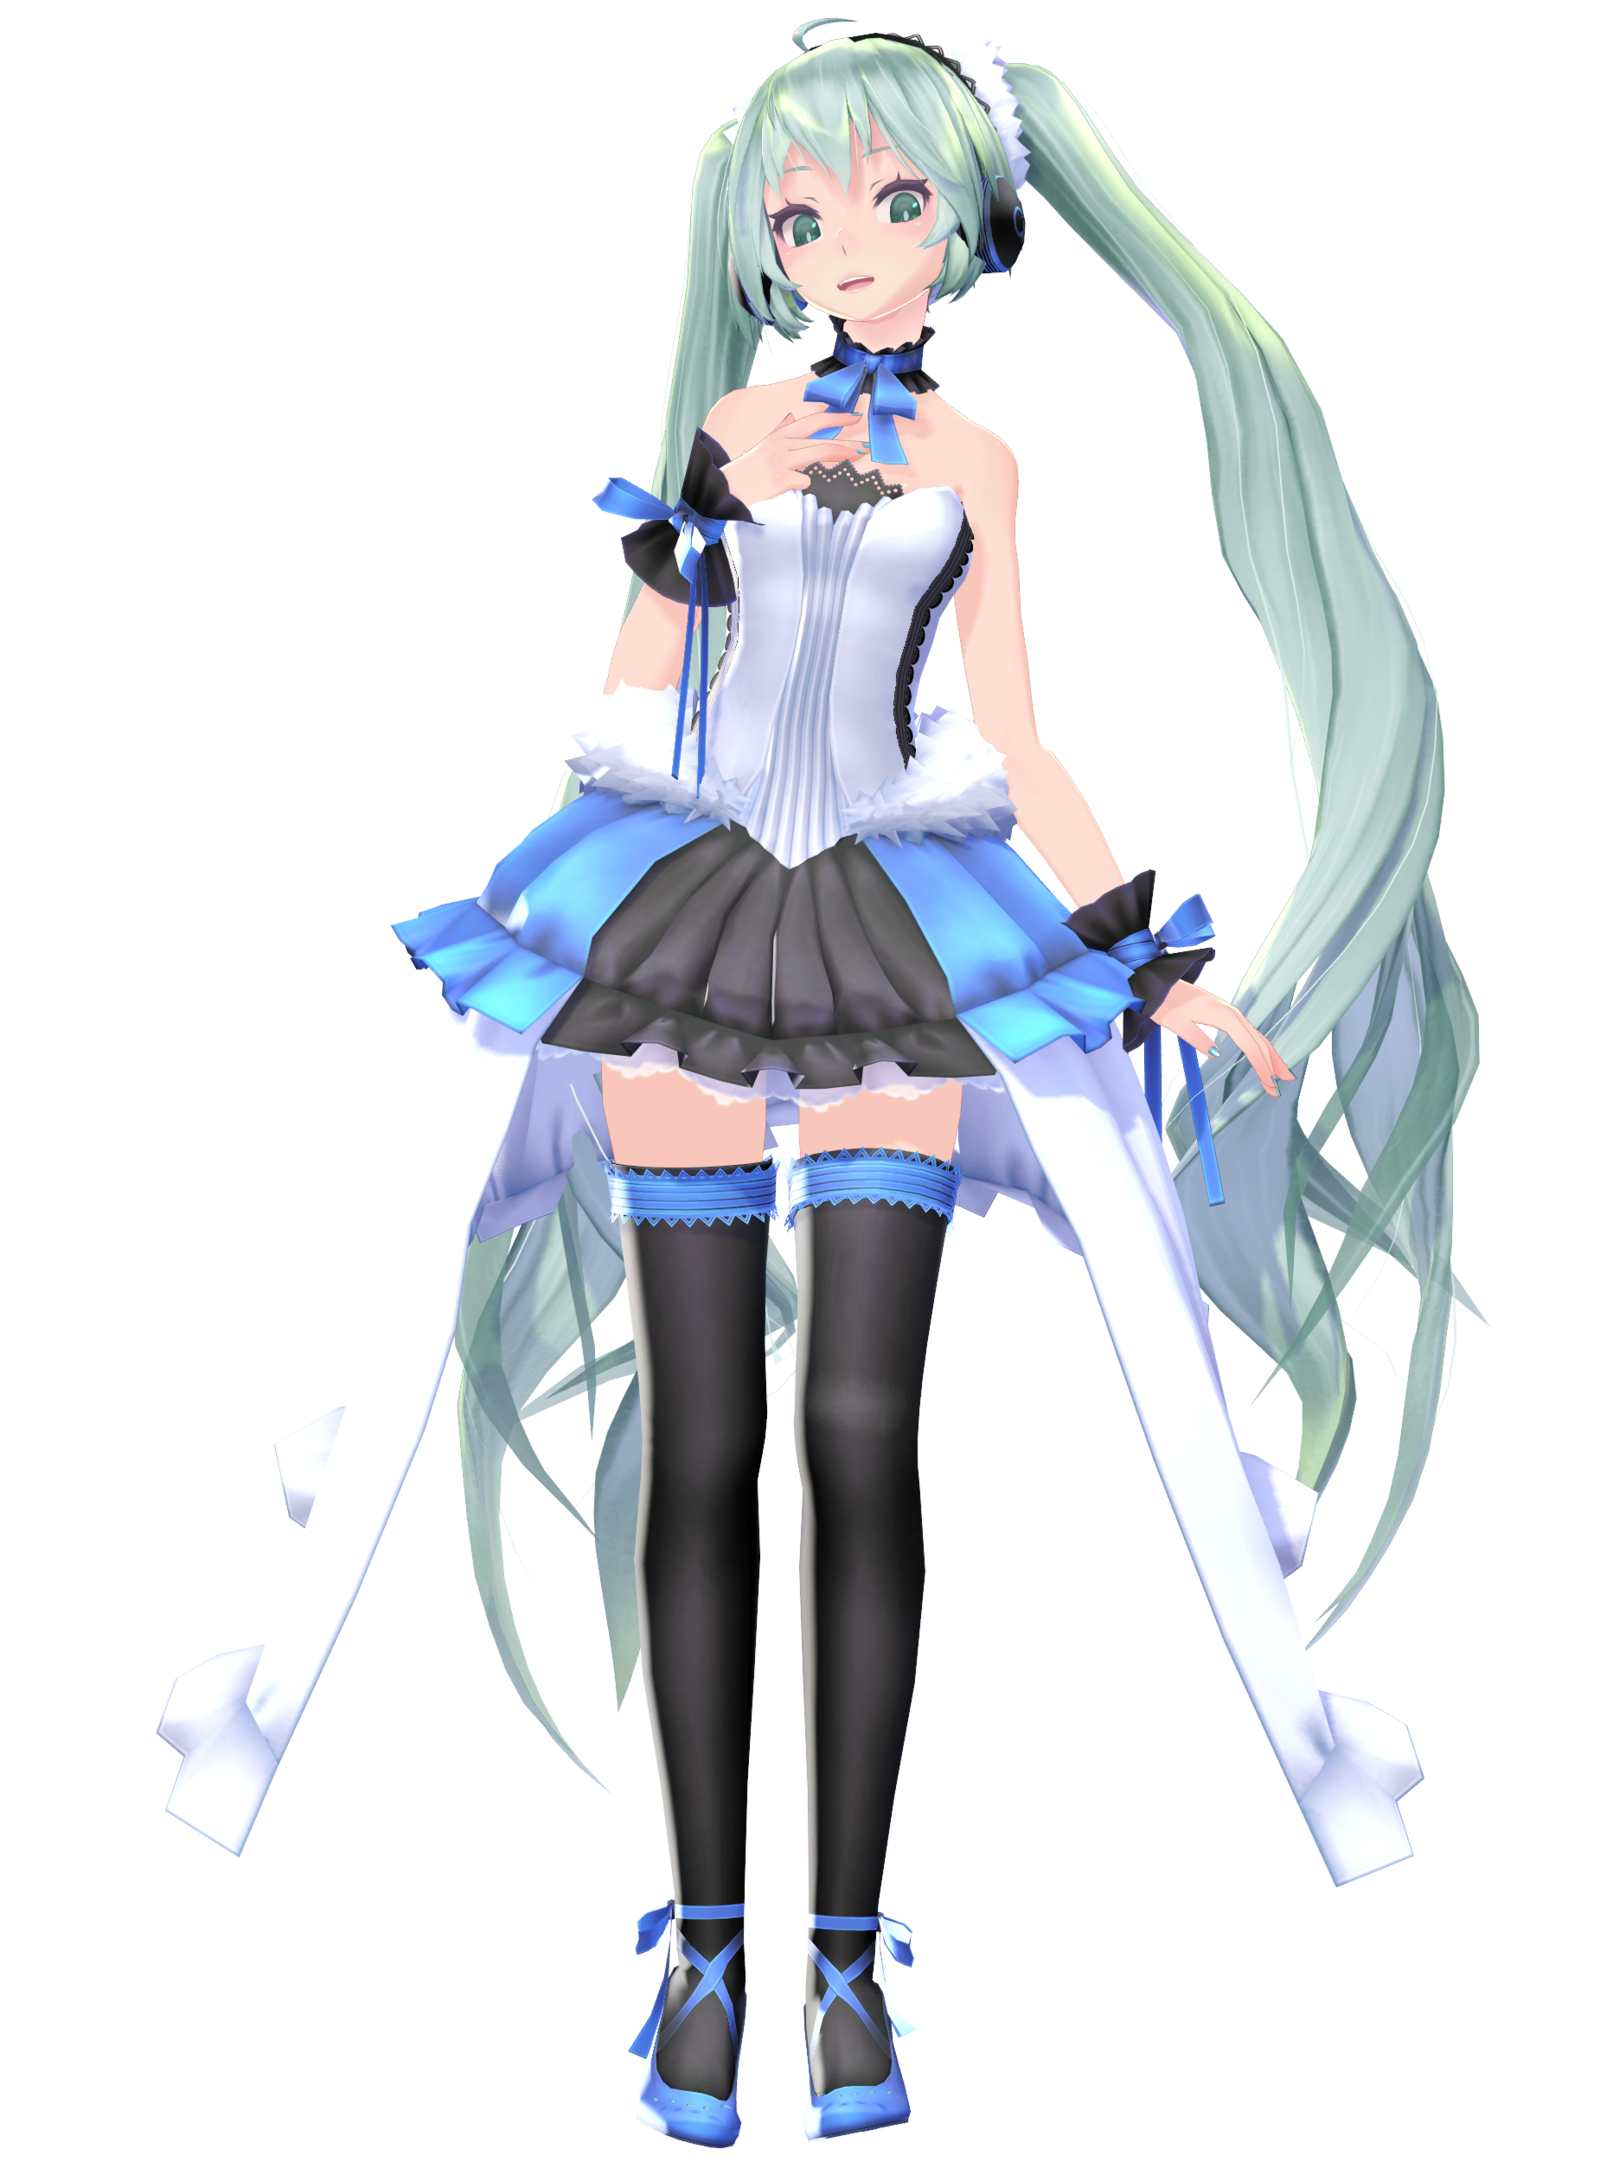 :DL: TDA Type2020 Miku by SenseiTag on DeviantArt | mmd ...